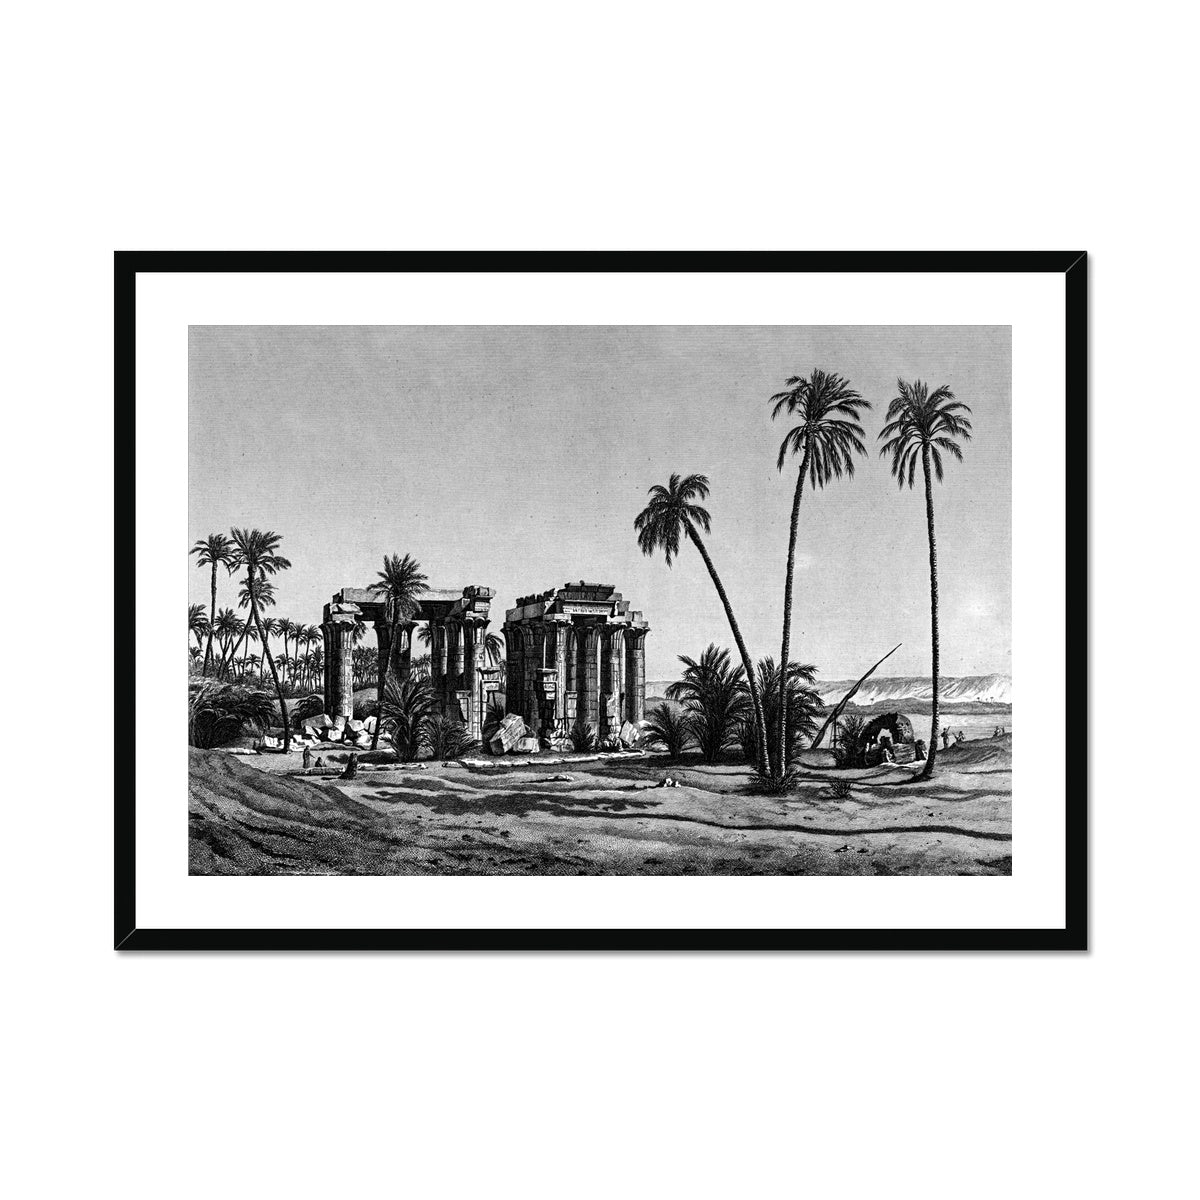 Temple Ruins Perspective View 2 - Qau el-Kebir Egypt -  Framed & Mounted Print